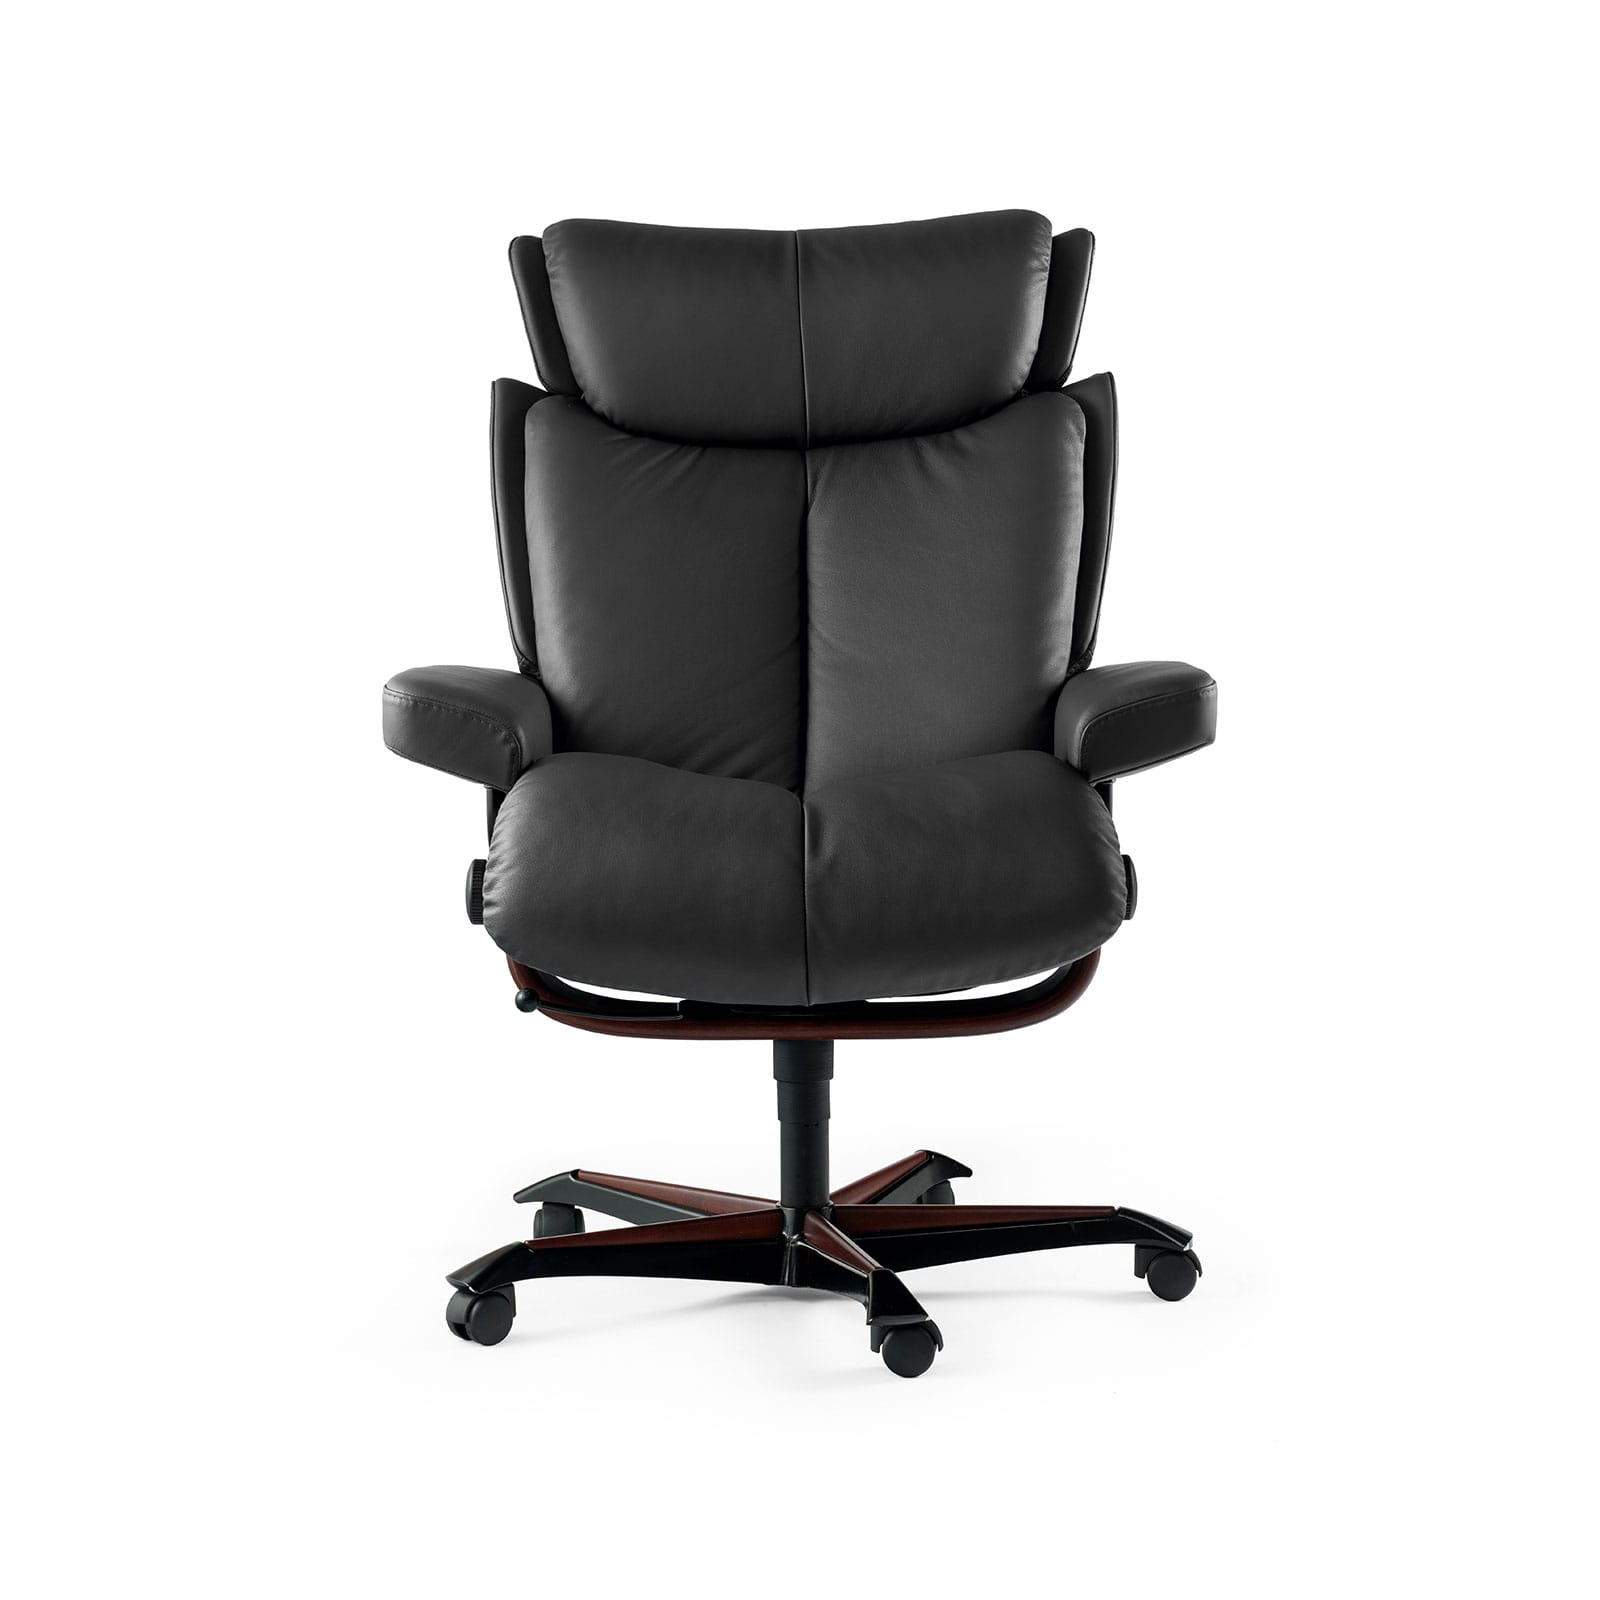 Stressless Bürostuhl Stressless Sessel Magic Home Office Paloma Rock Gestell Braun